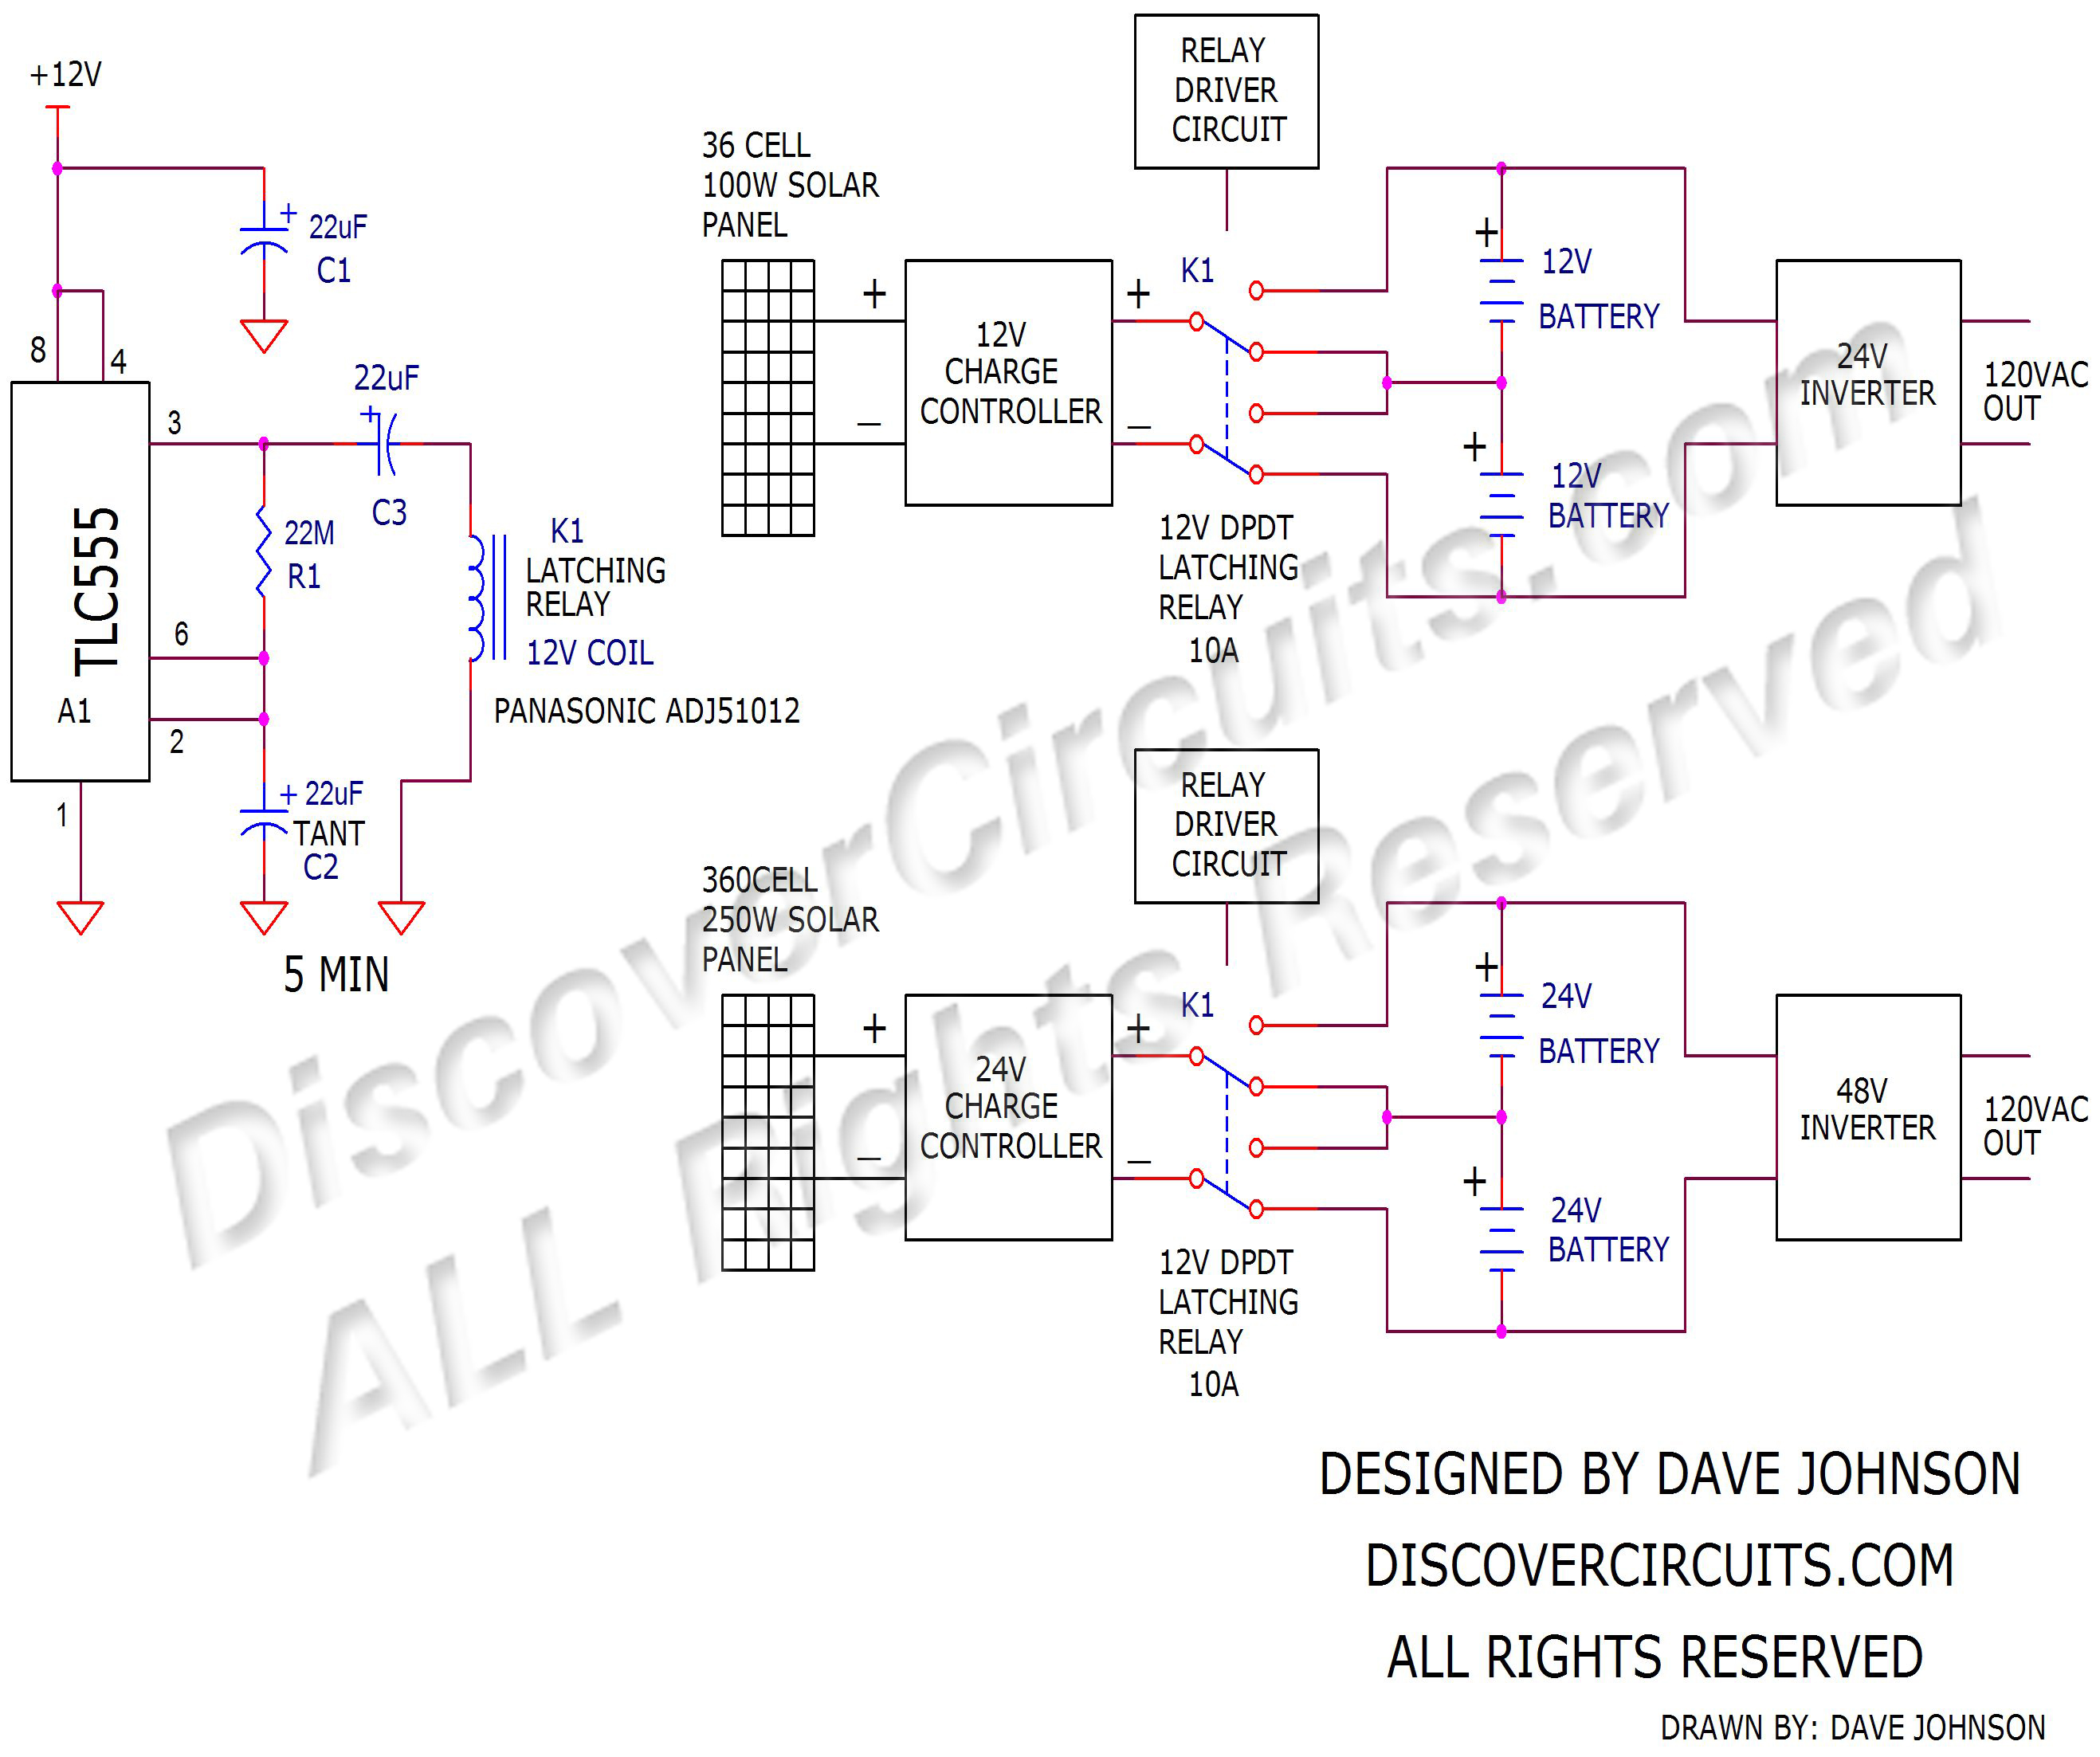 9v solar panels converted to 4 5v panels circuit designed by rh discovercircuits com